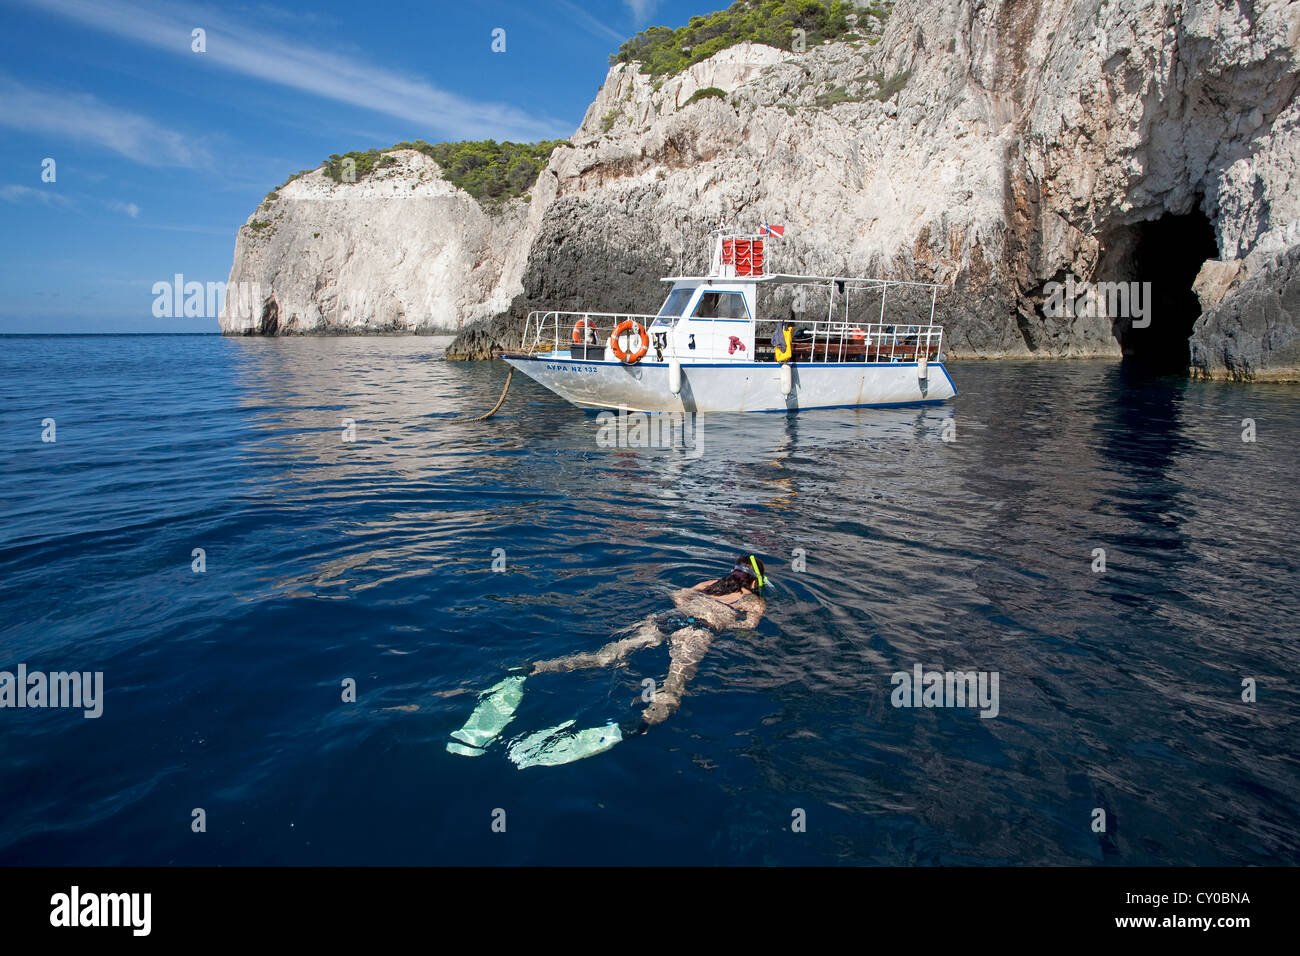 Woman snorkelling off the rocky coast, dive boat anchored in front of a grotto, rocky coast at Limni Keriou - Stock Image